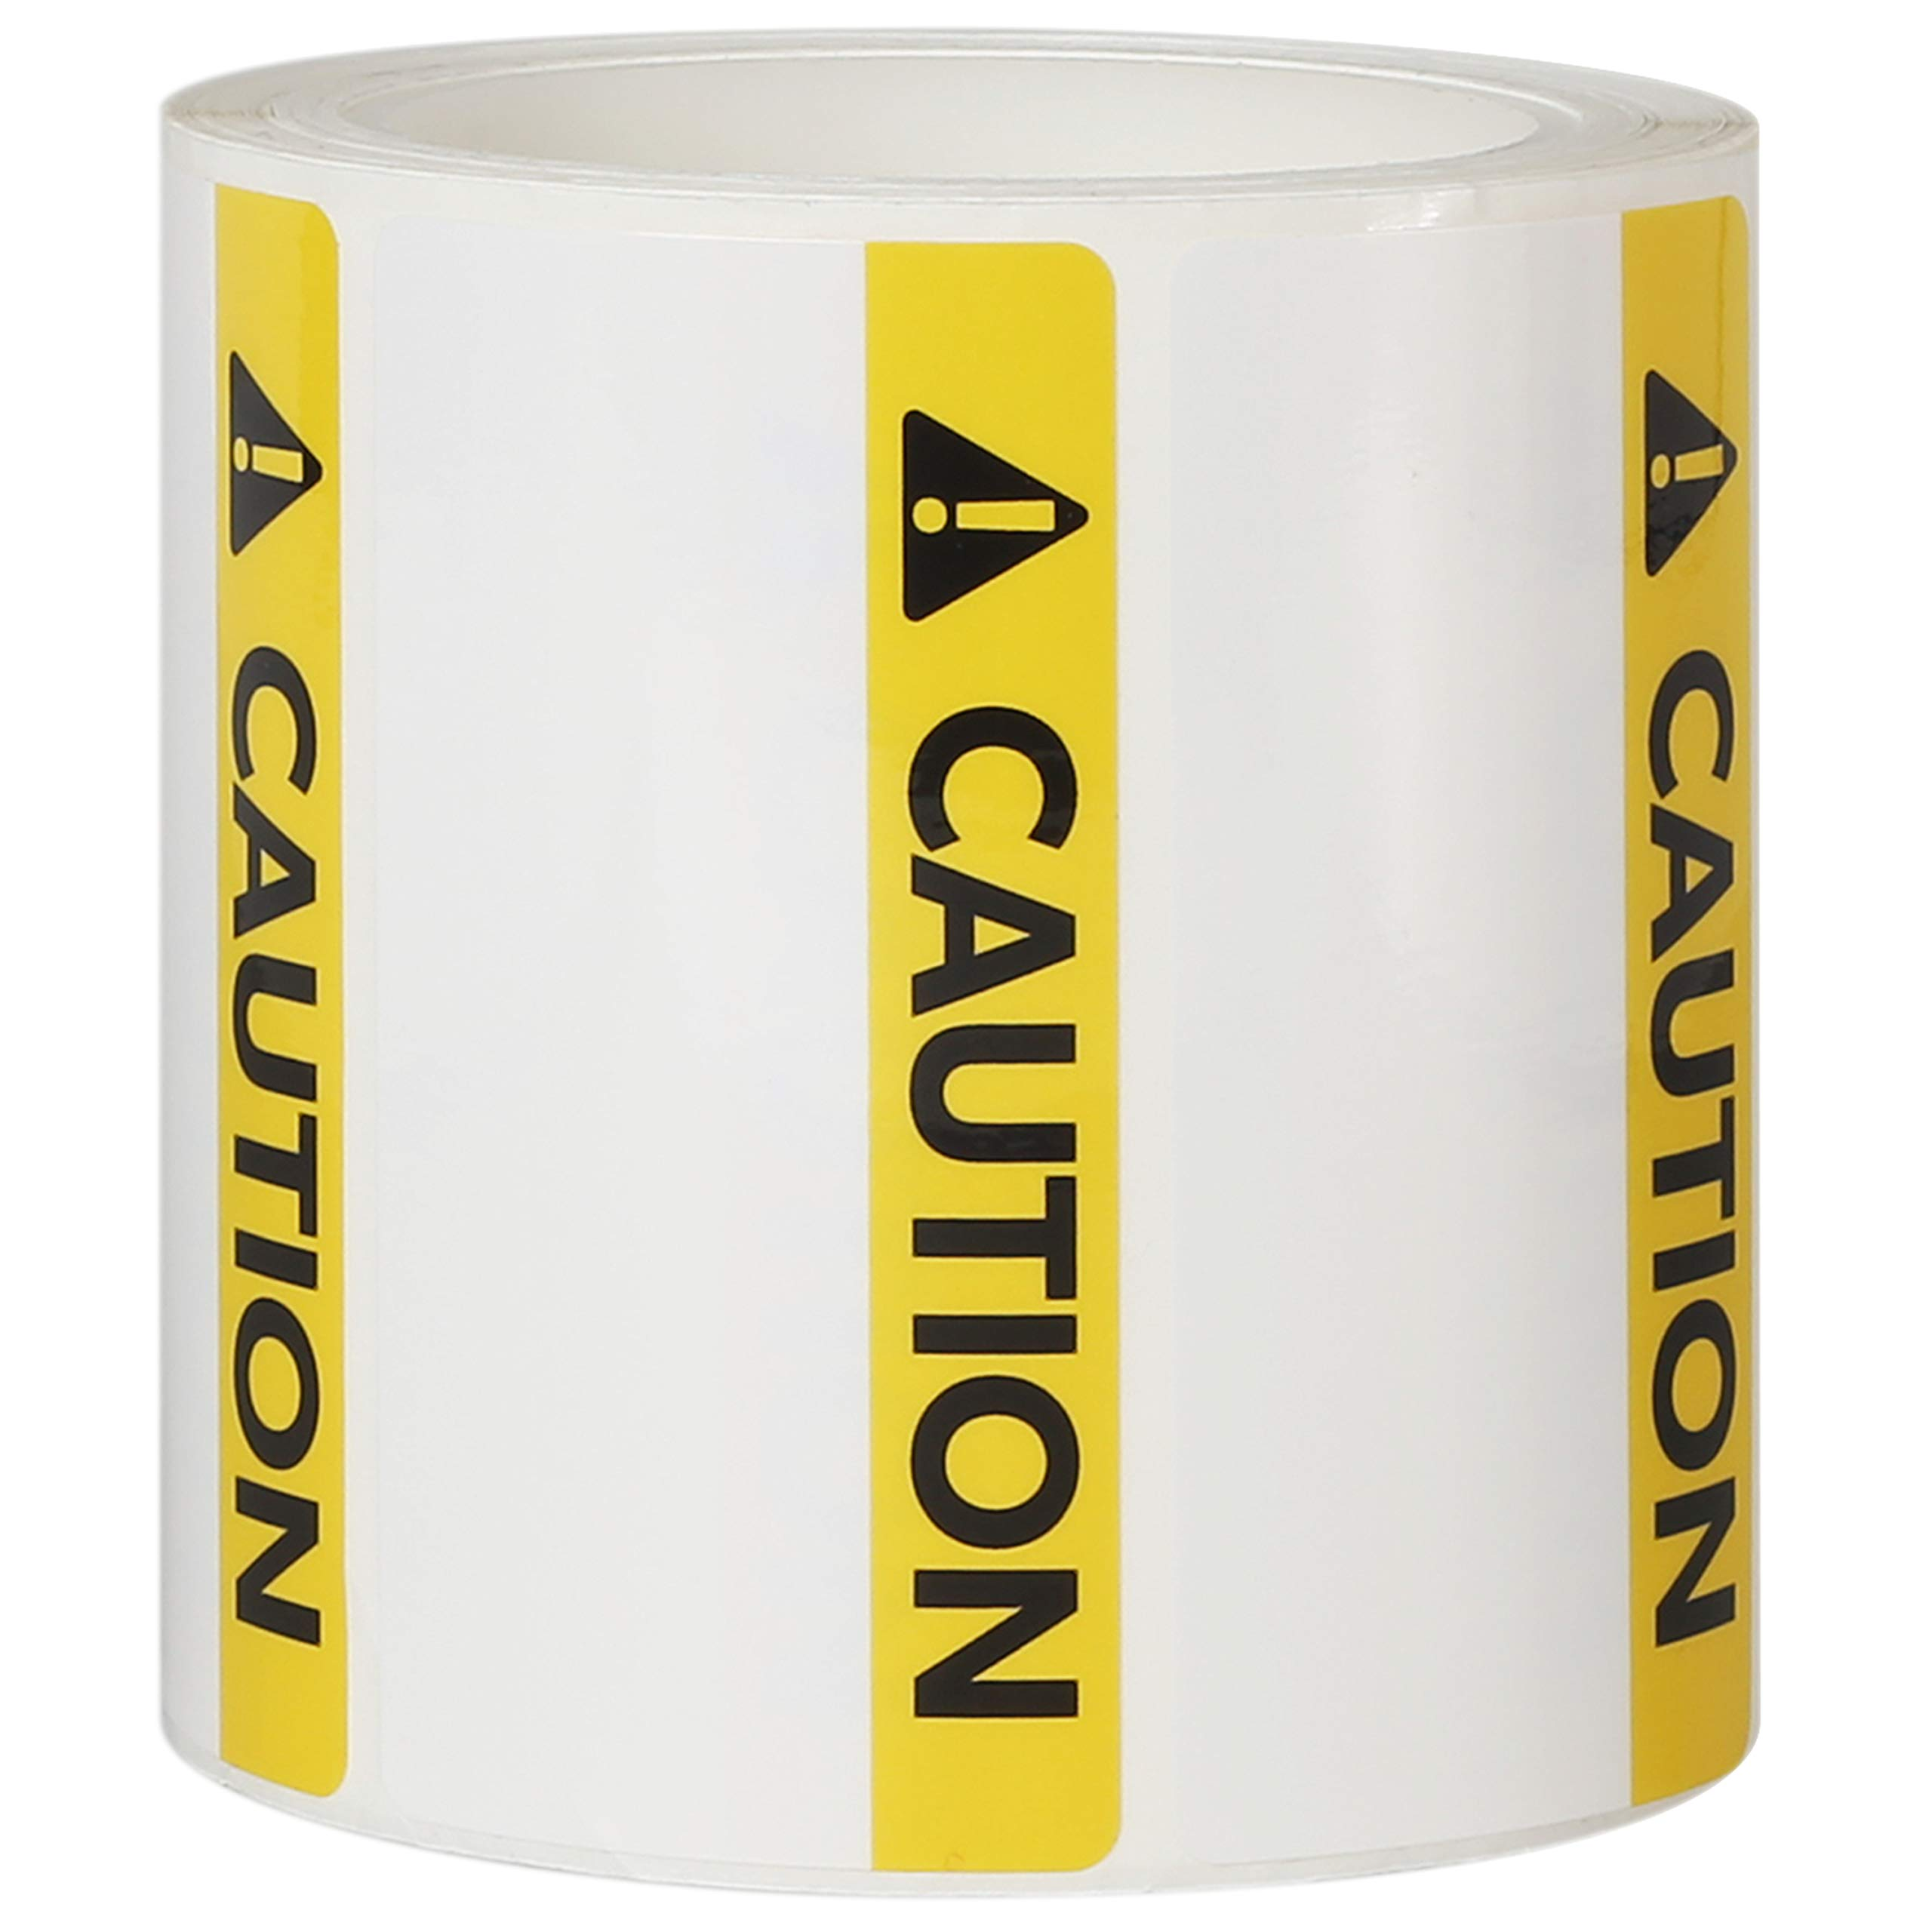 Avery Caution Header Sign Roll of 350 Labels for Thermal Transfer Printers, 4'' x 2'' (61216) by Avery (Image #1)